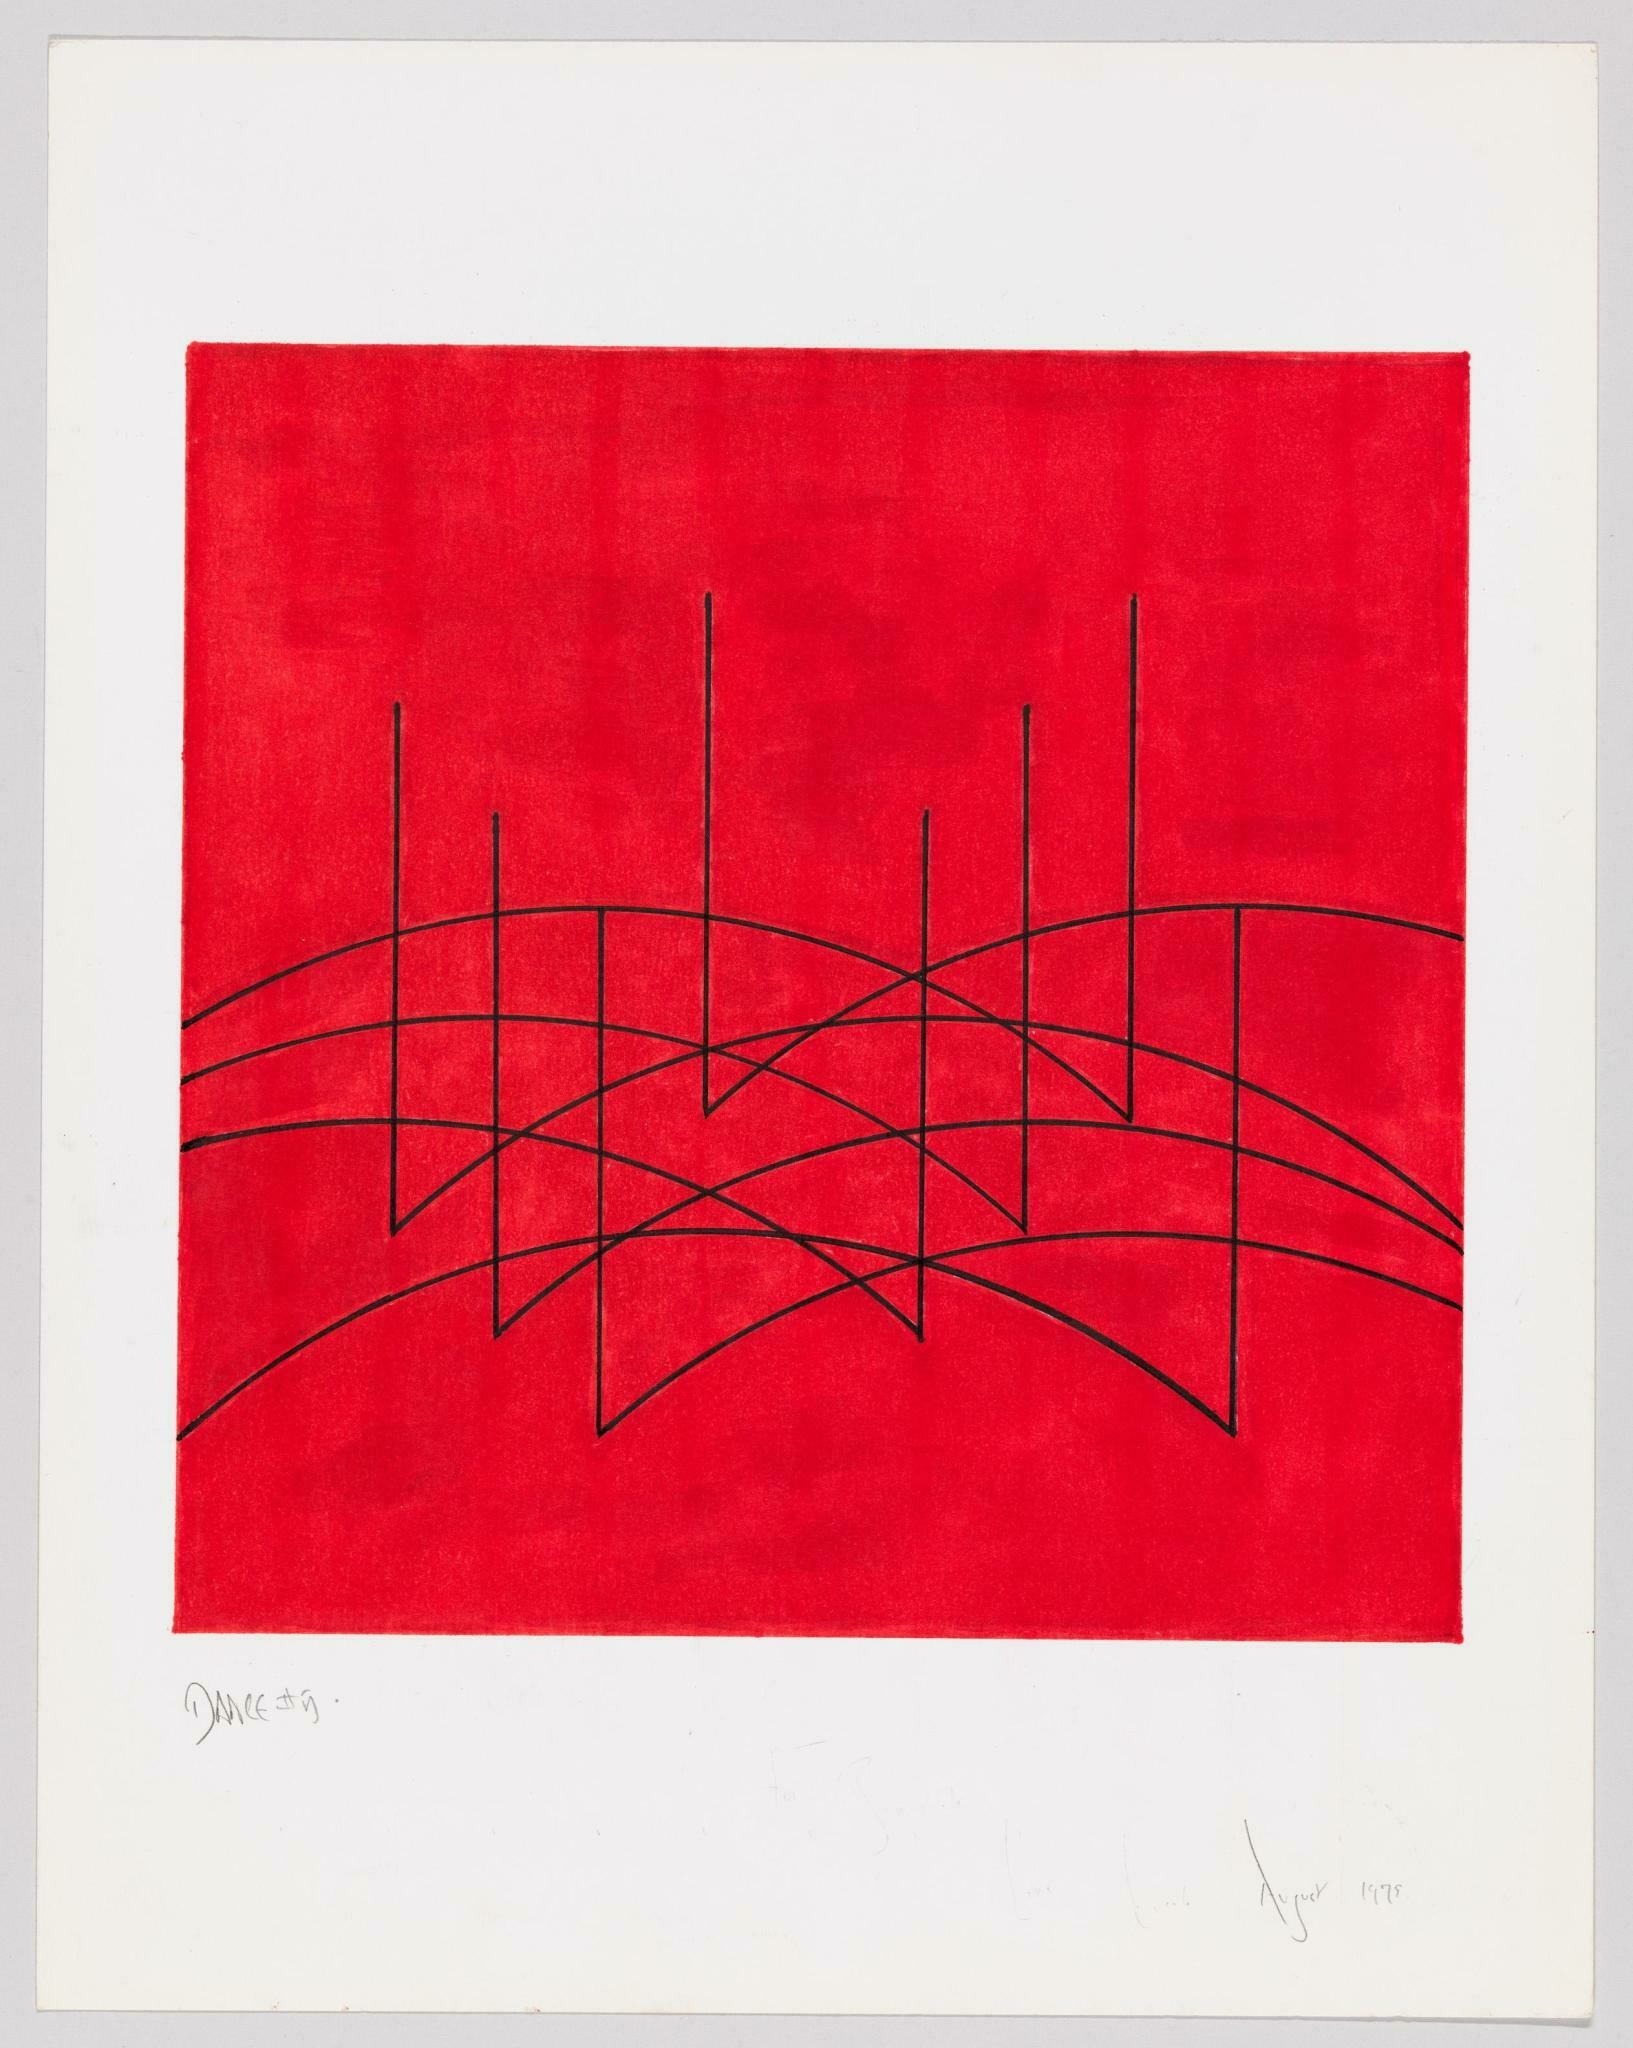 Thin black lines stand, then leap, in arcs across a red backdrop